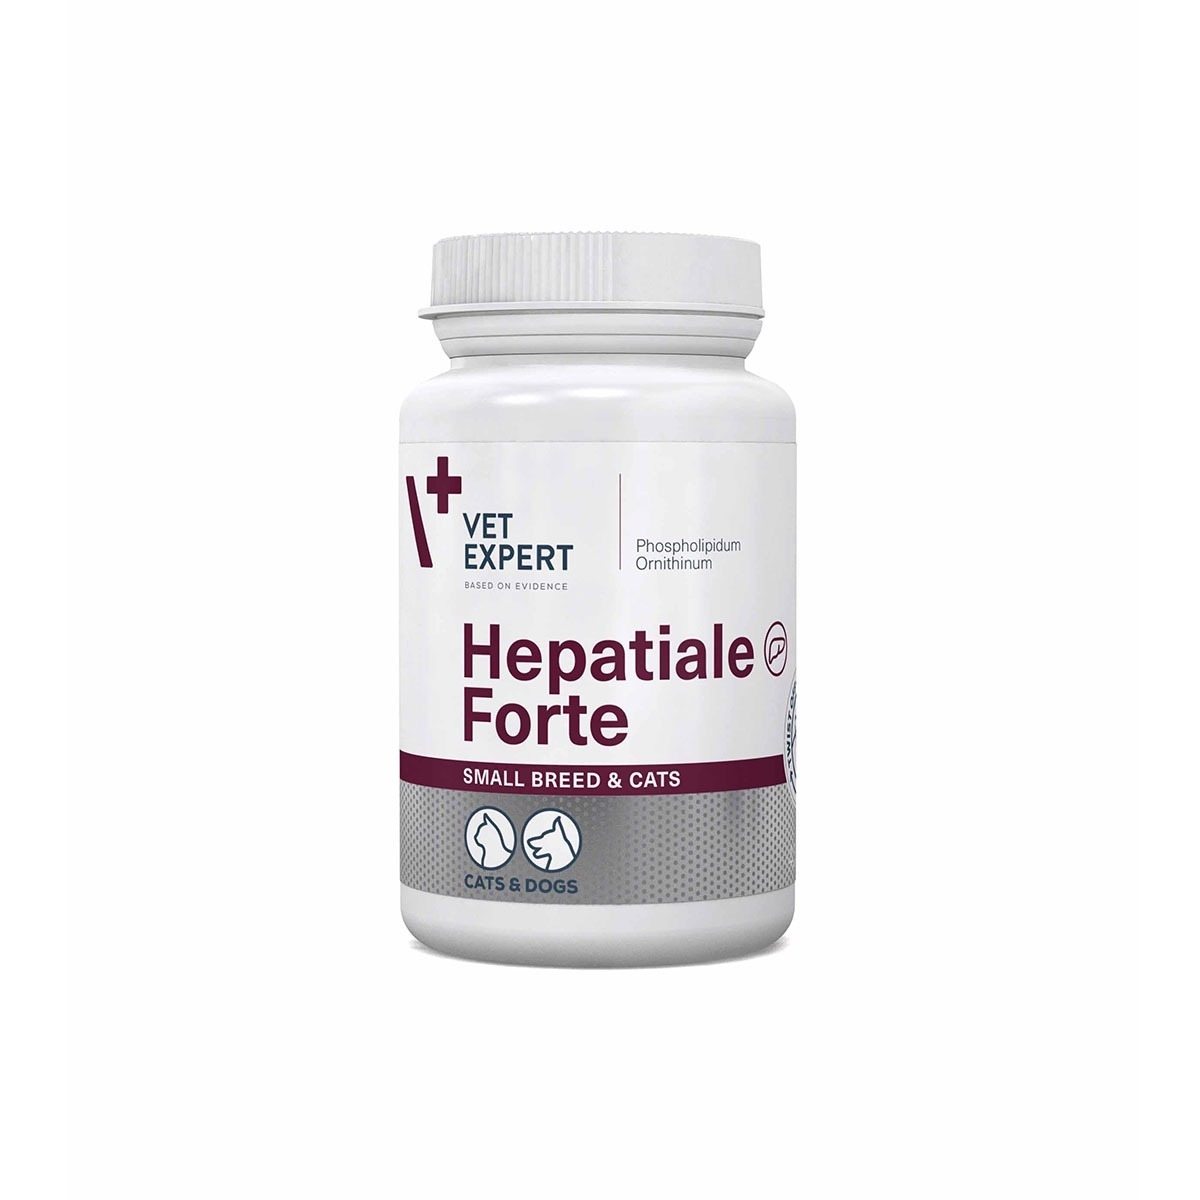 Hepatiale Forte Twist-Off 170 mg, Small Breed & Cats, 40 Capsule